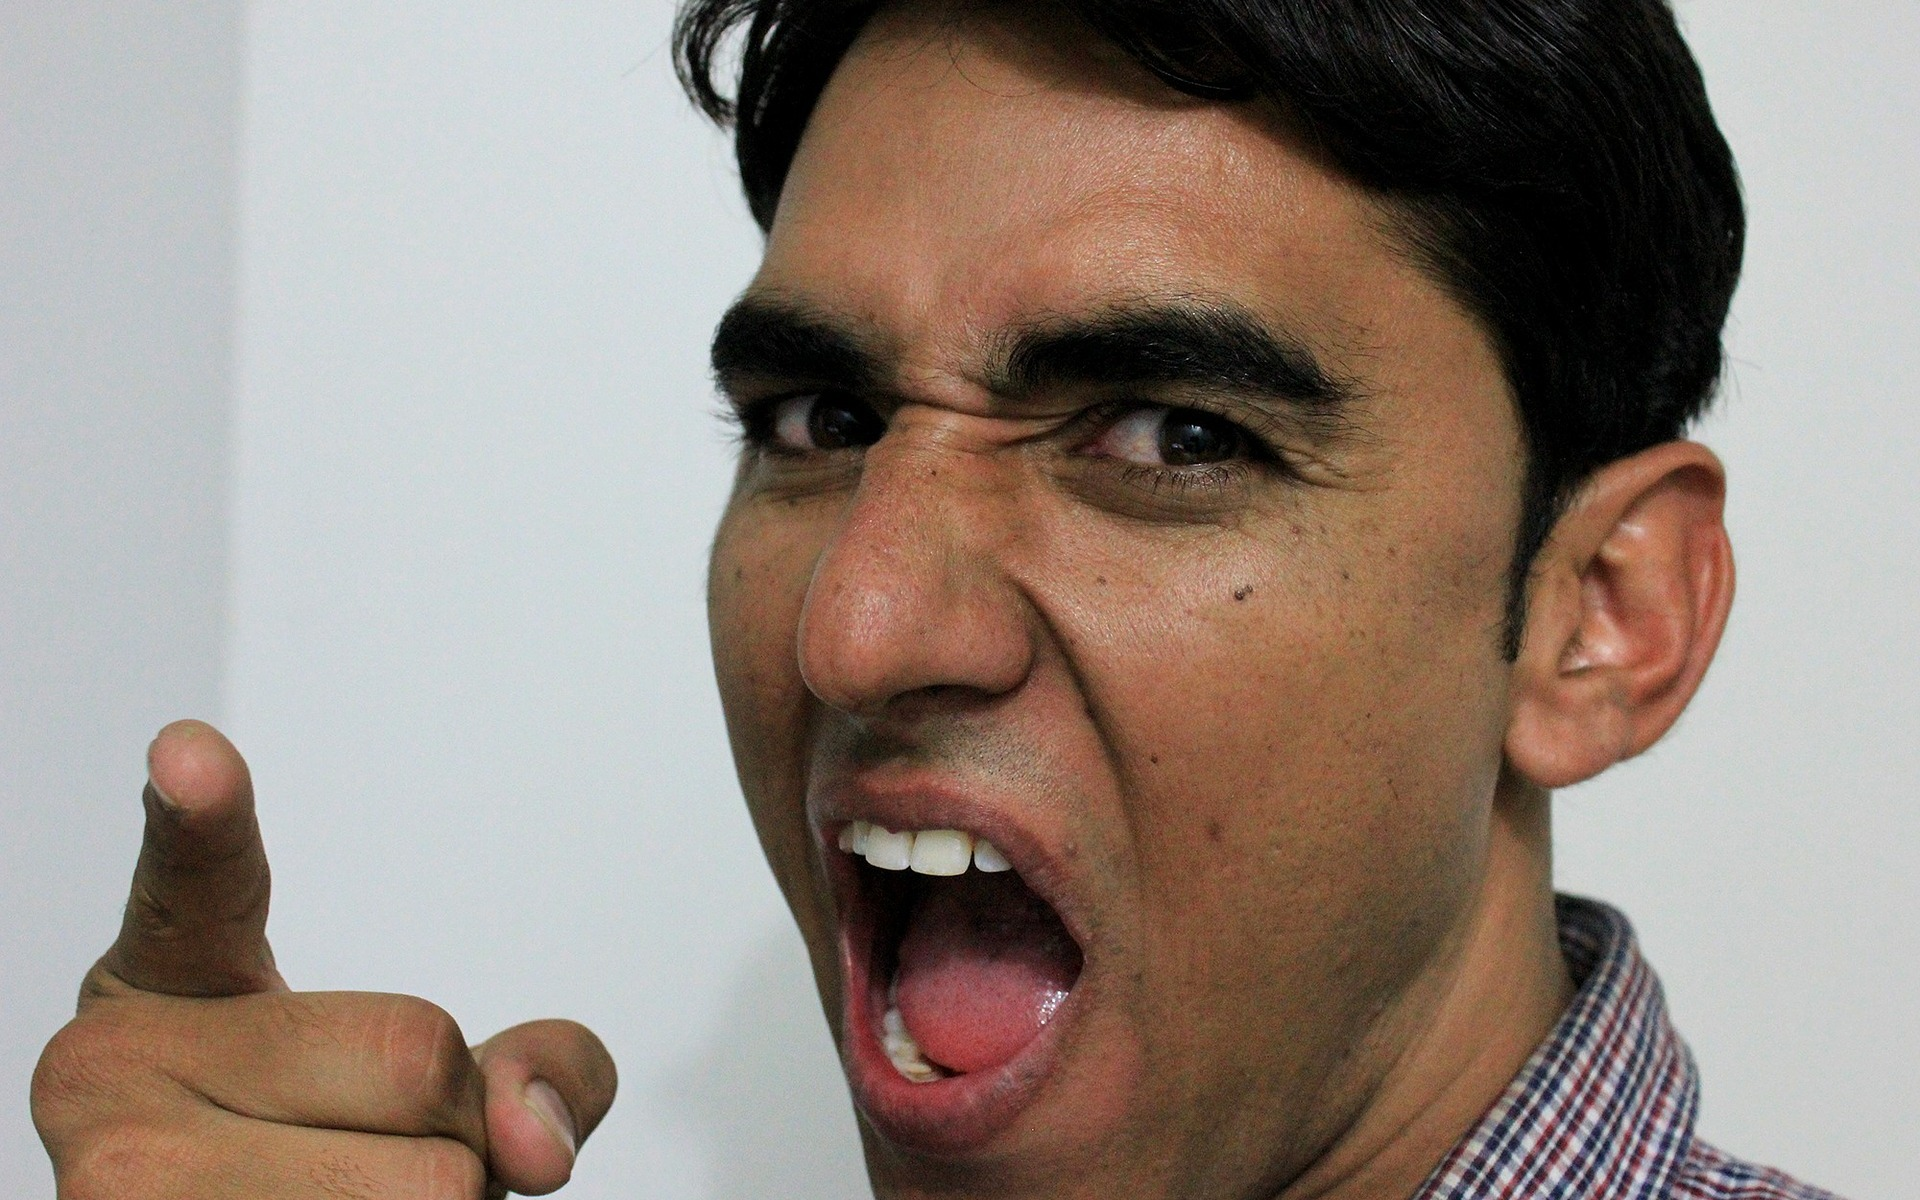 Angry brown Indian male pointing finger with open mouth